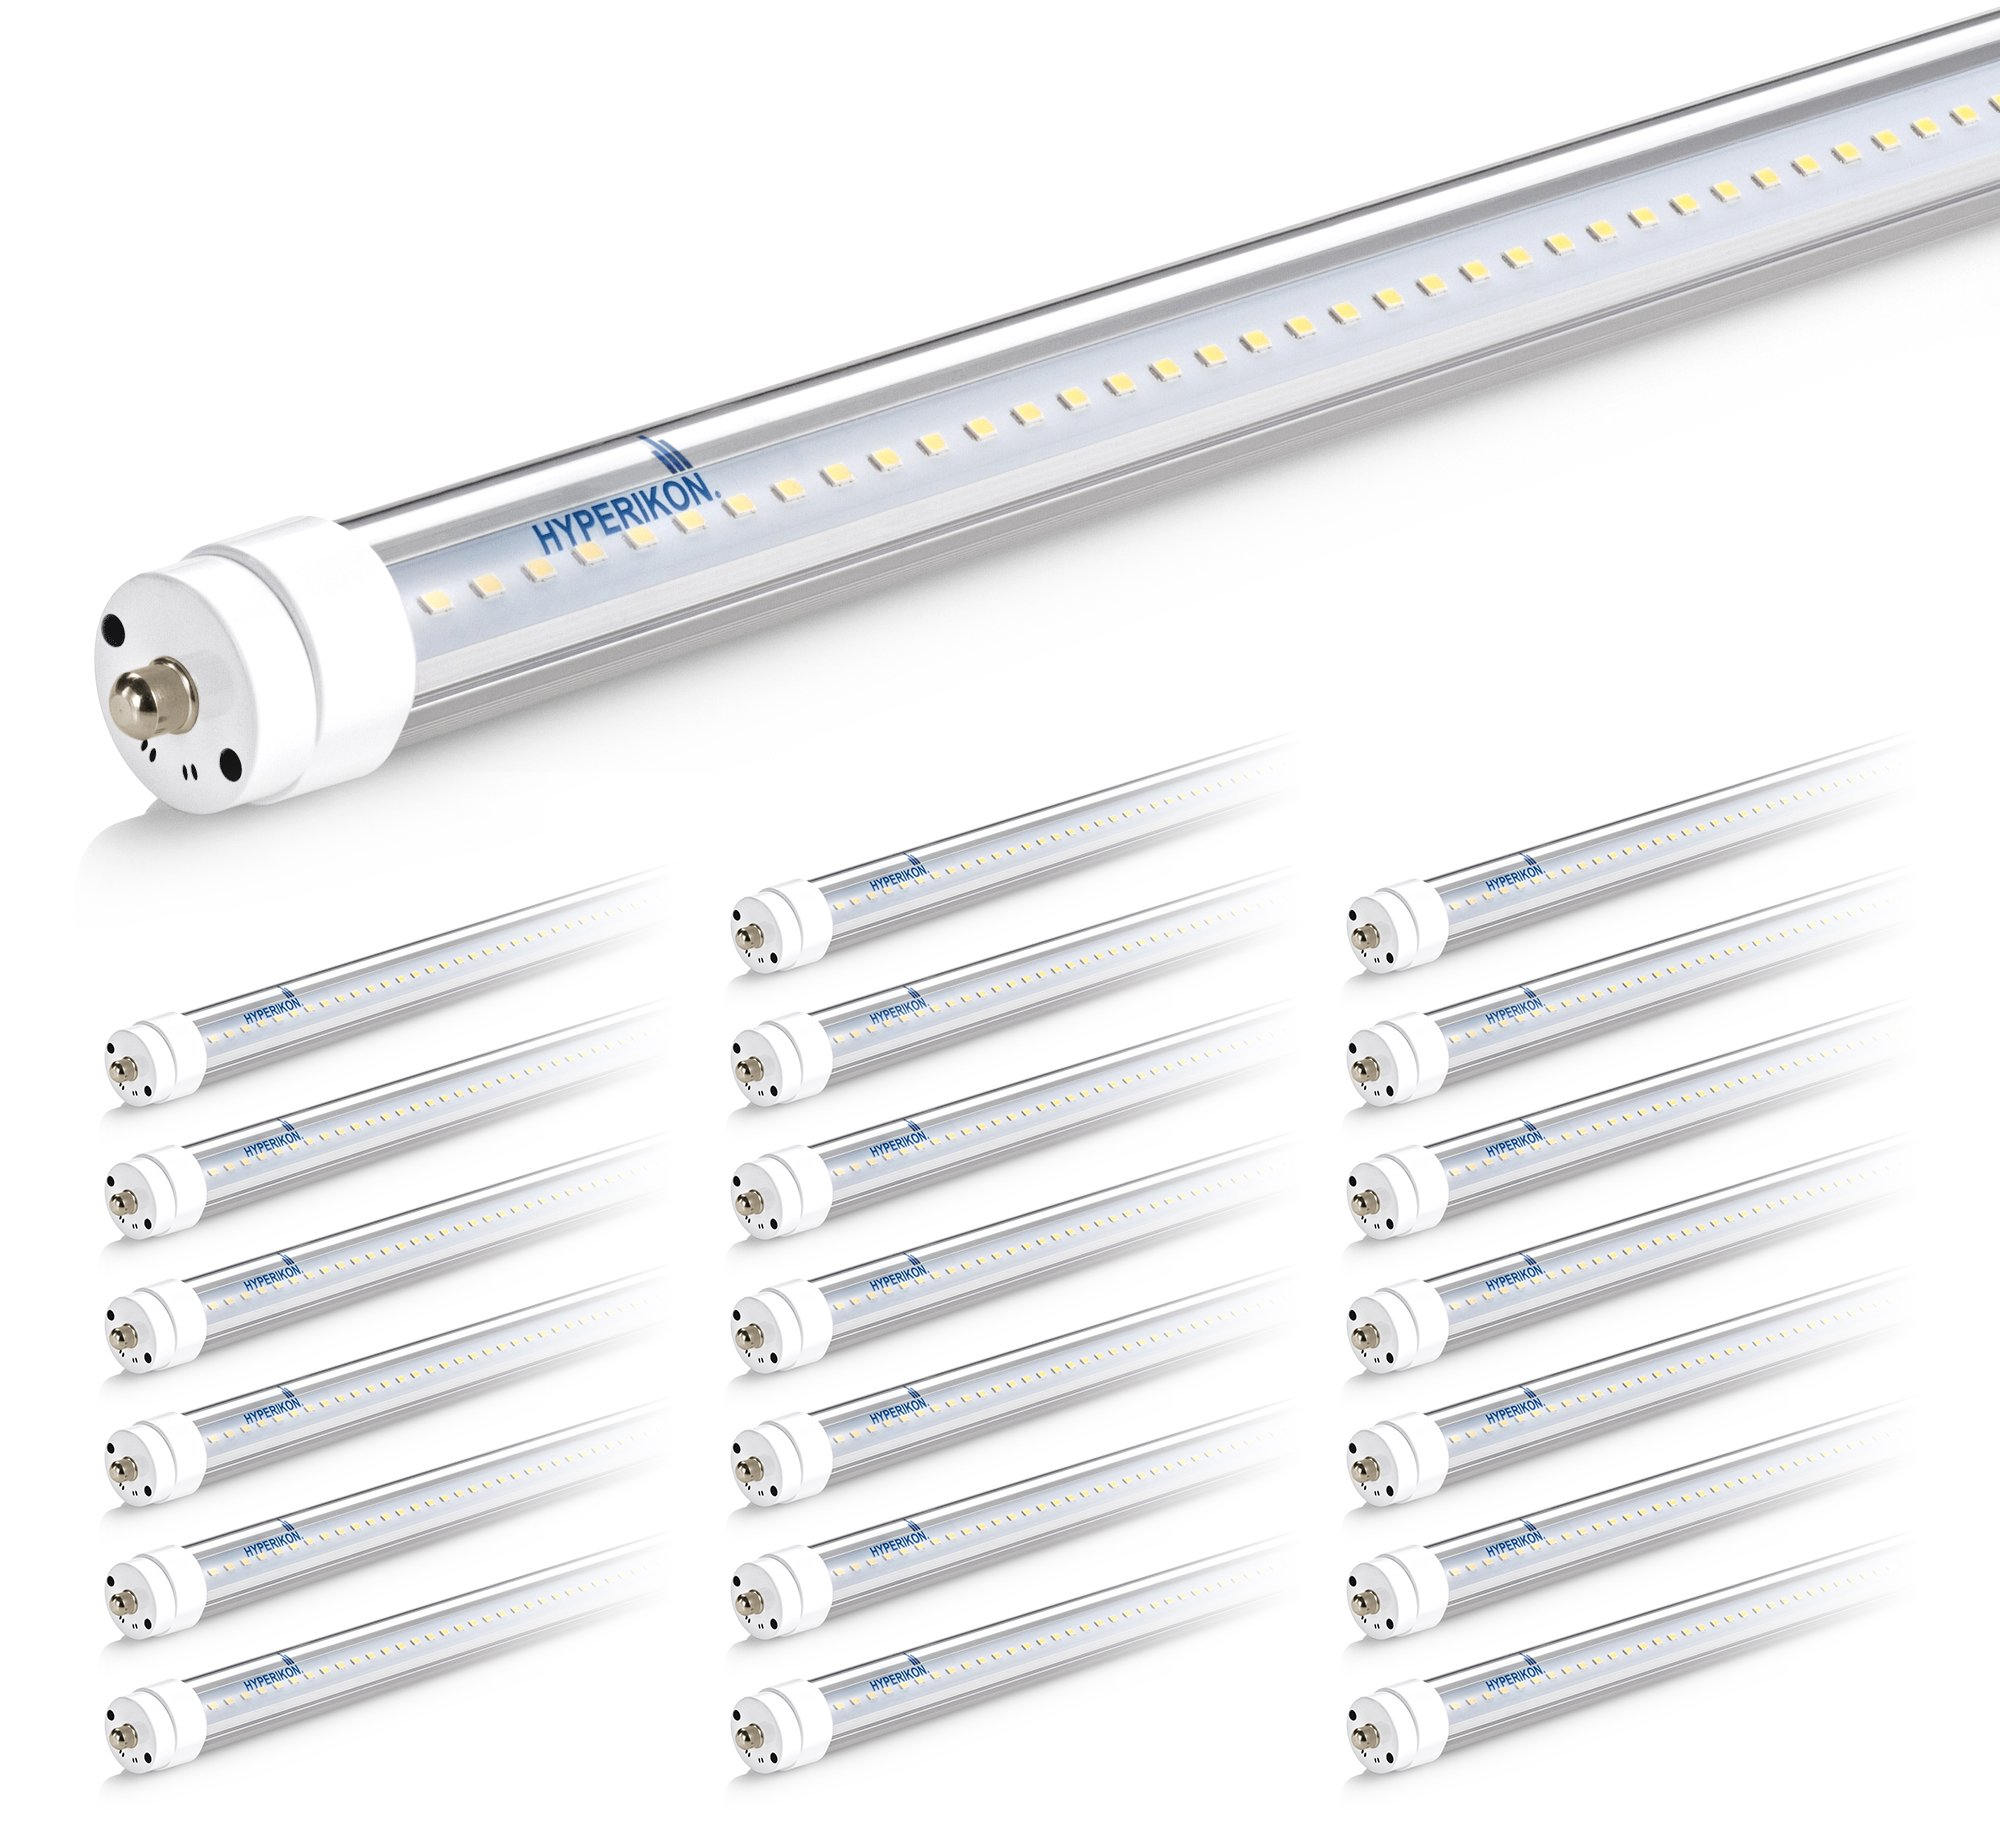 Hyperikon 8FT LED Bulbs, T8 T10 T12 LED Tube Light 36W (75W Equiv.), Ballast Bypass, Shatterproof, Fluorescent Replacement, 3800 Lumens, 5000K, UL, Clear, Workshop, Warehouse, Garage - 20 Pack